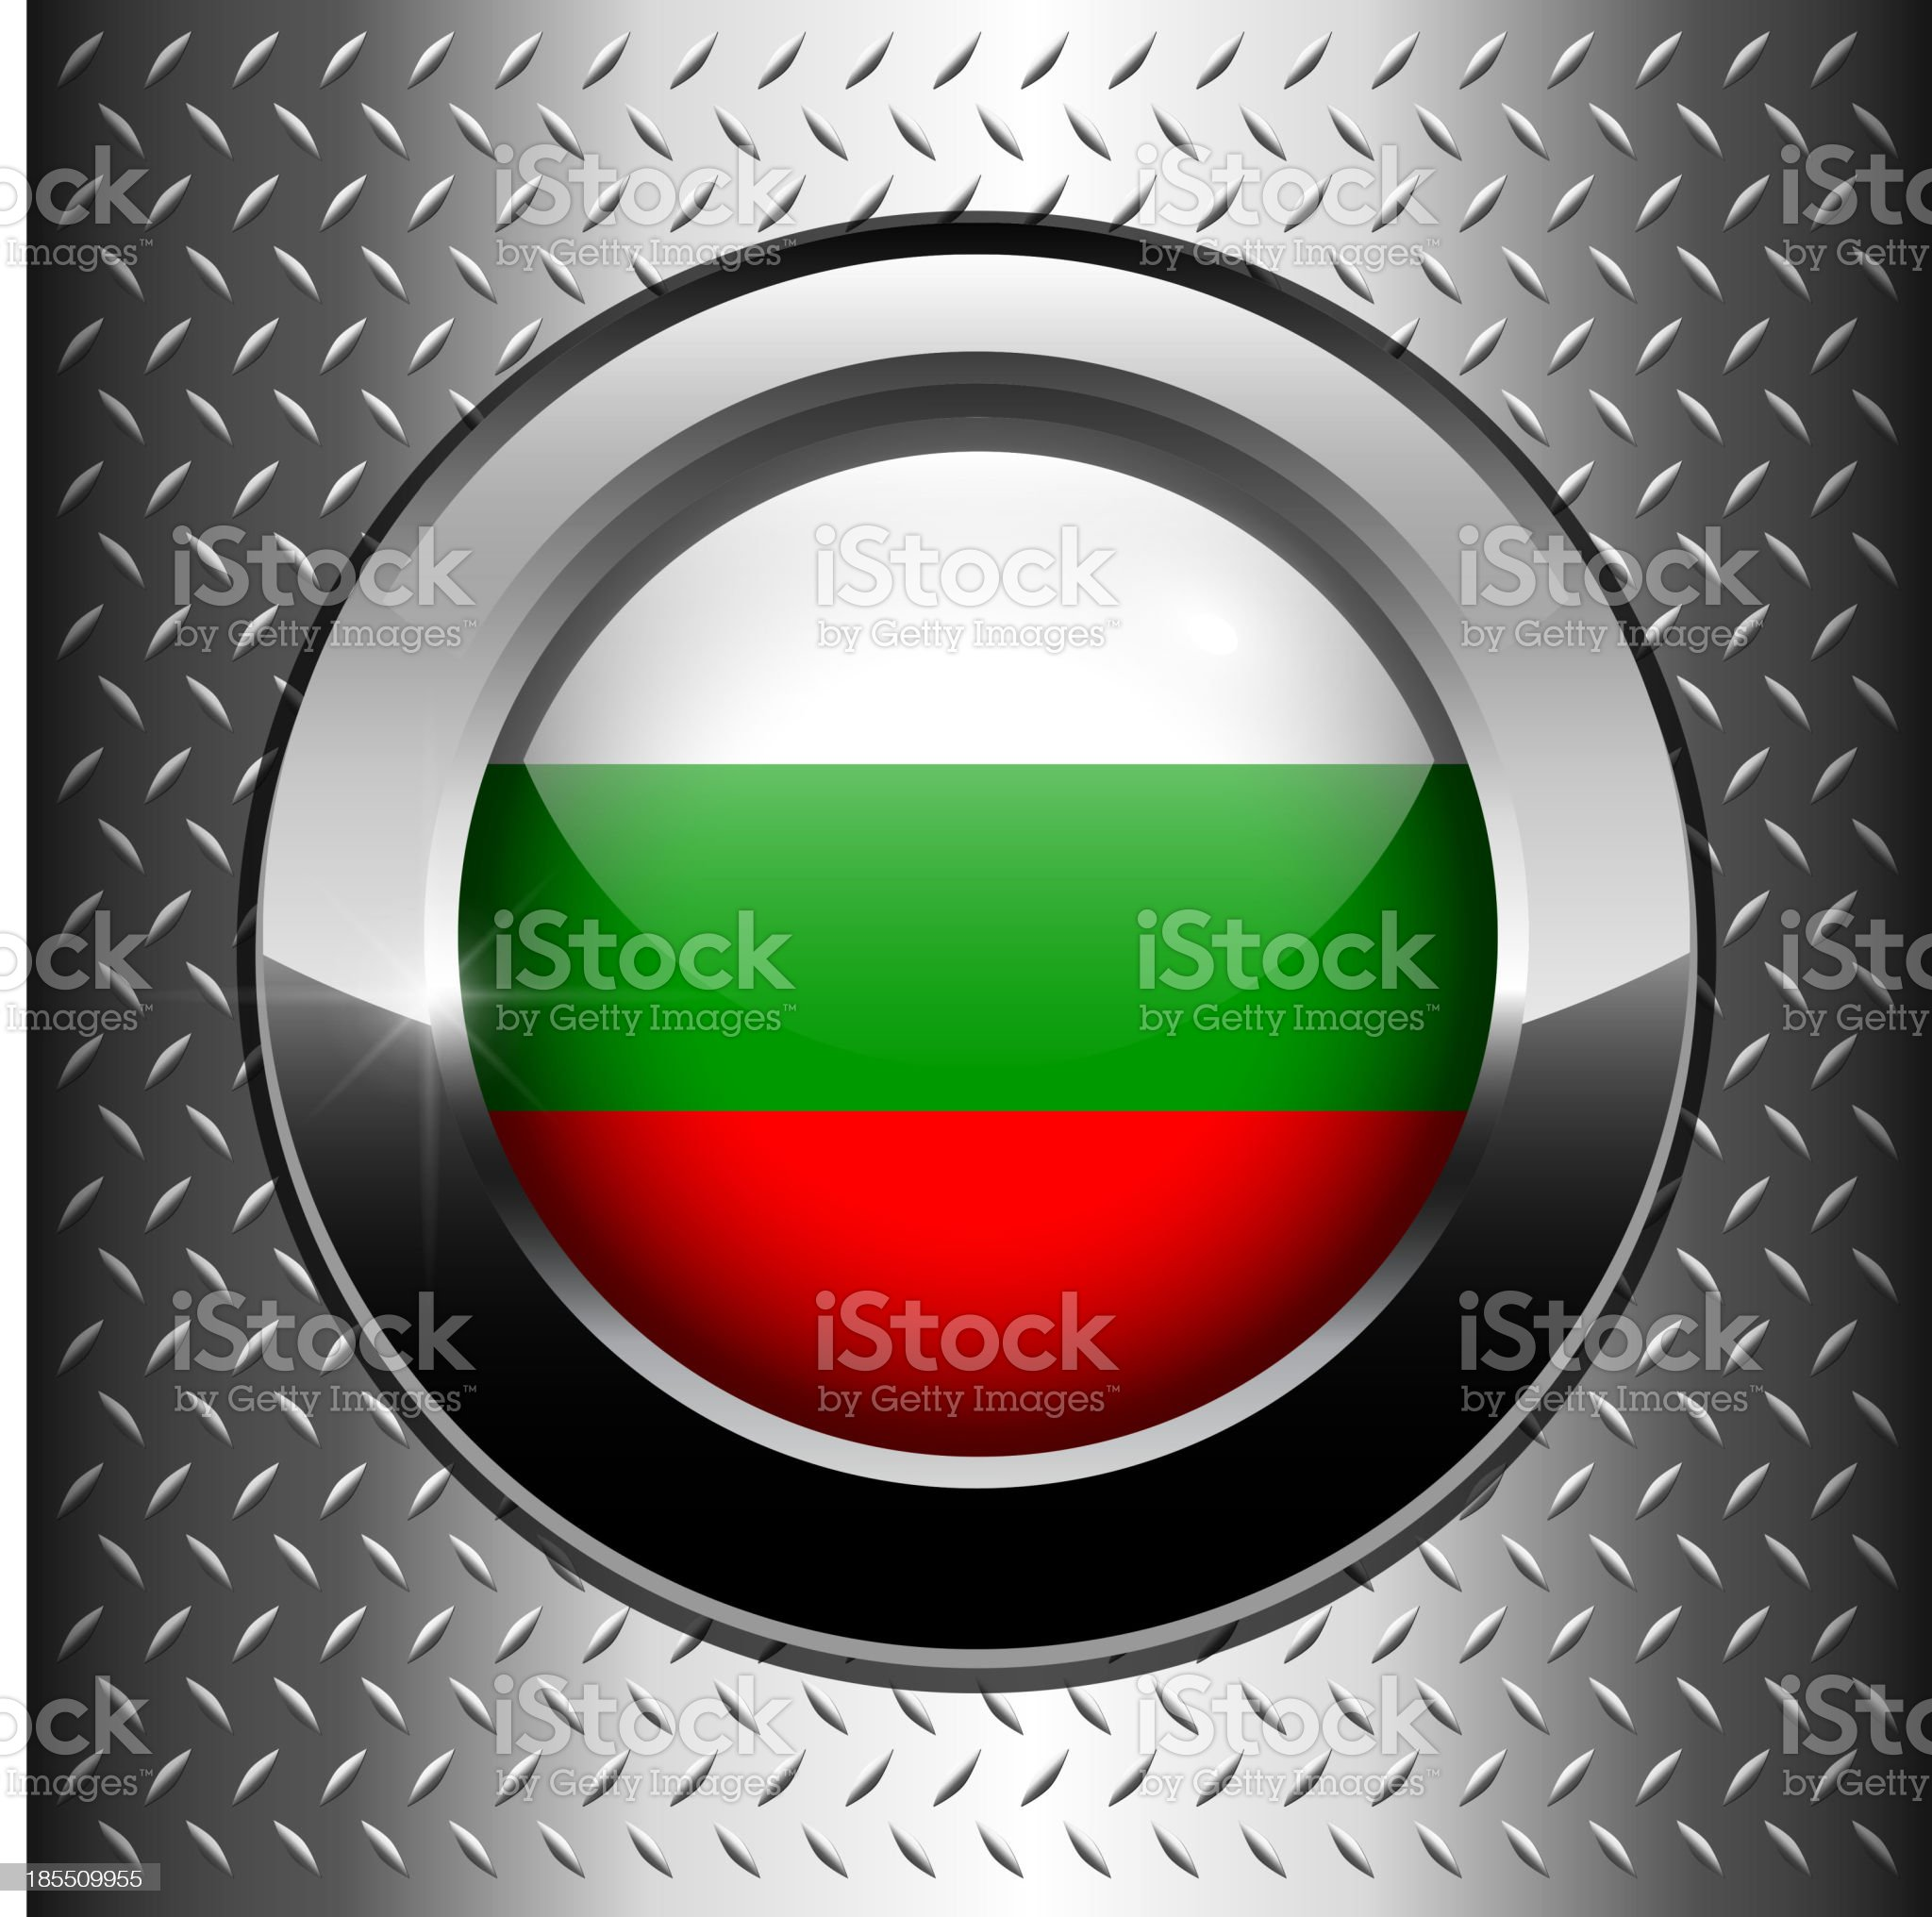 Bulgaria, Bulgarian flag button royalty-free stock vector art